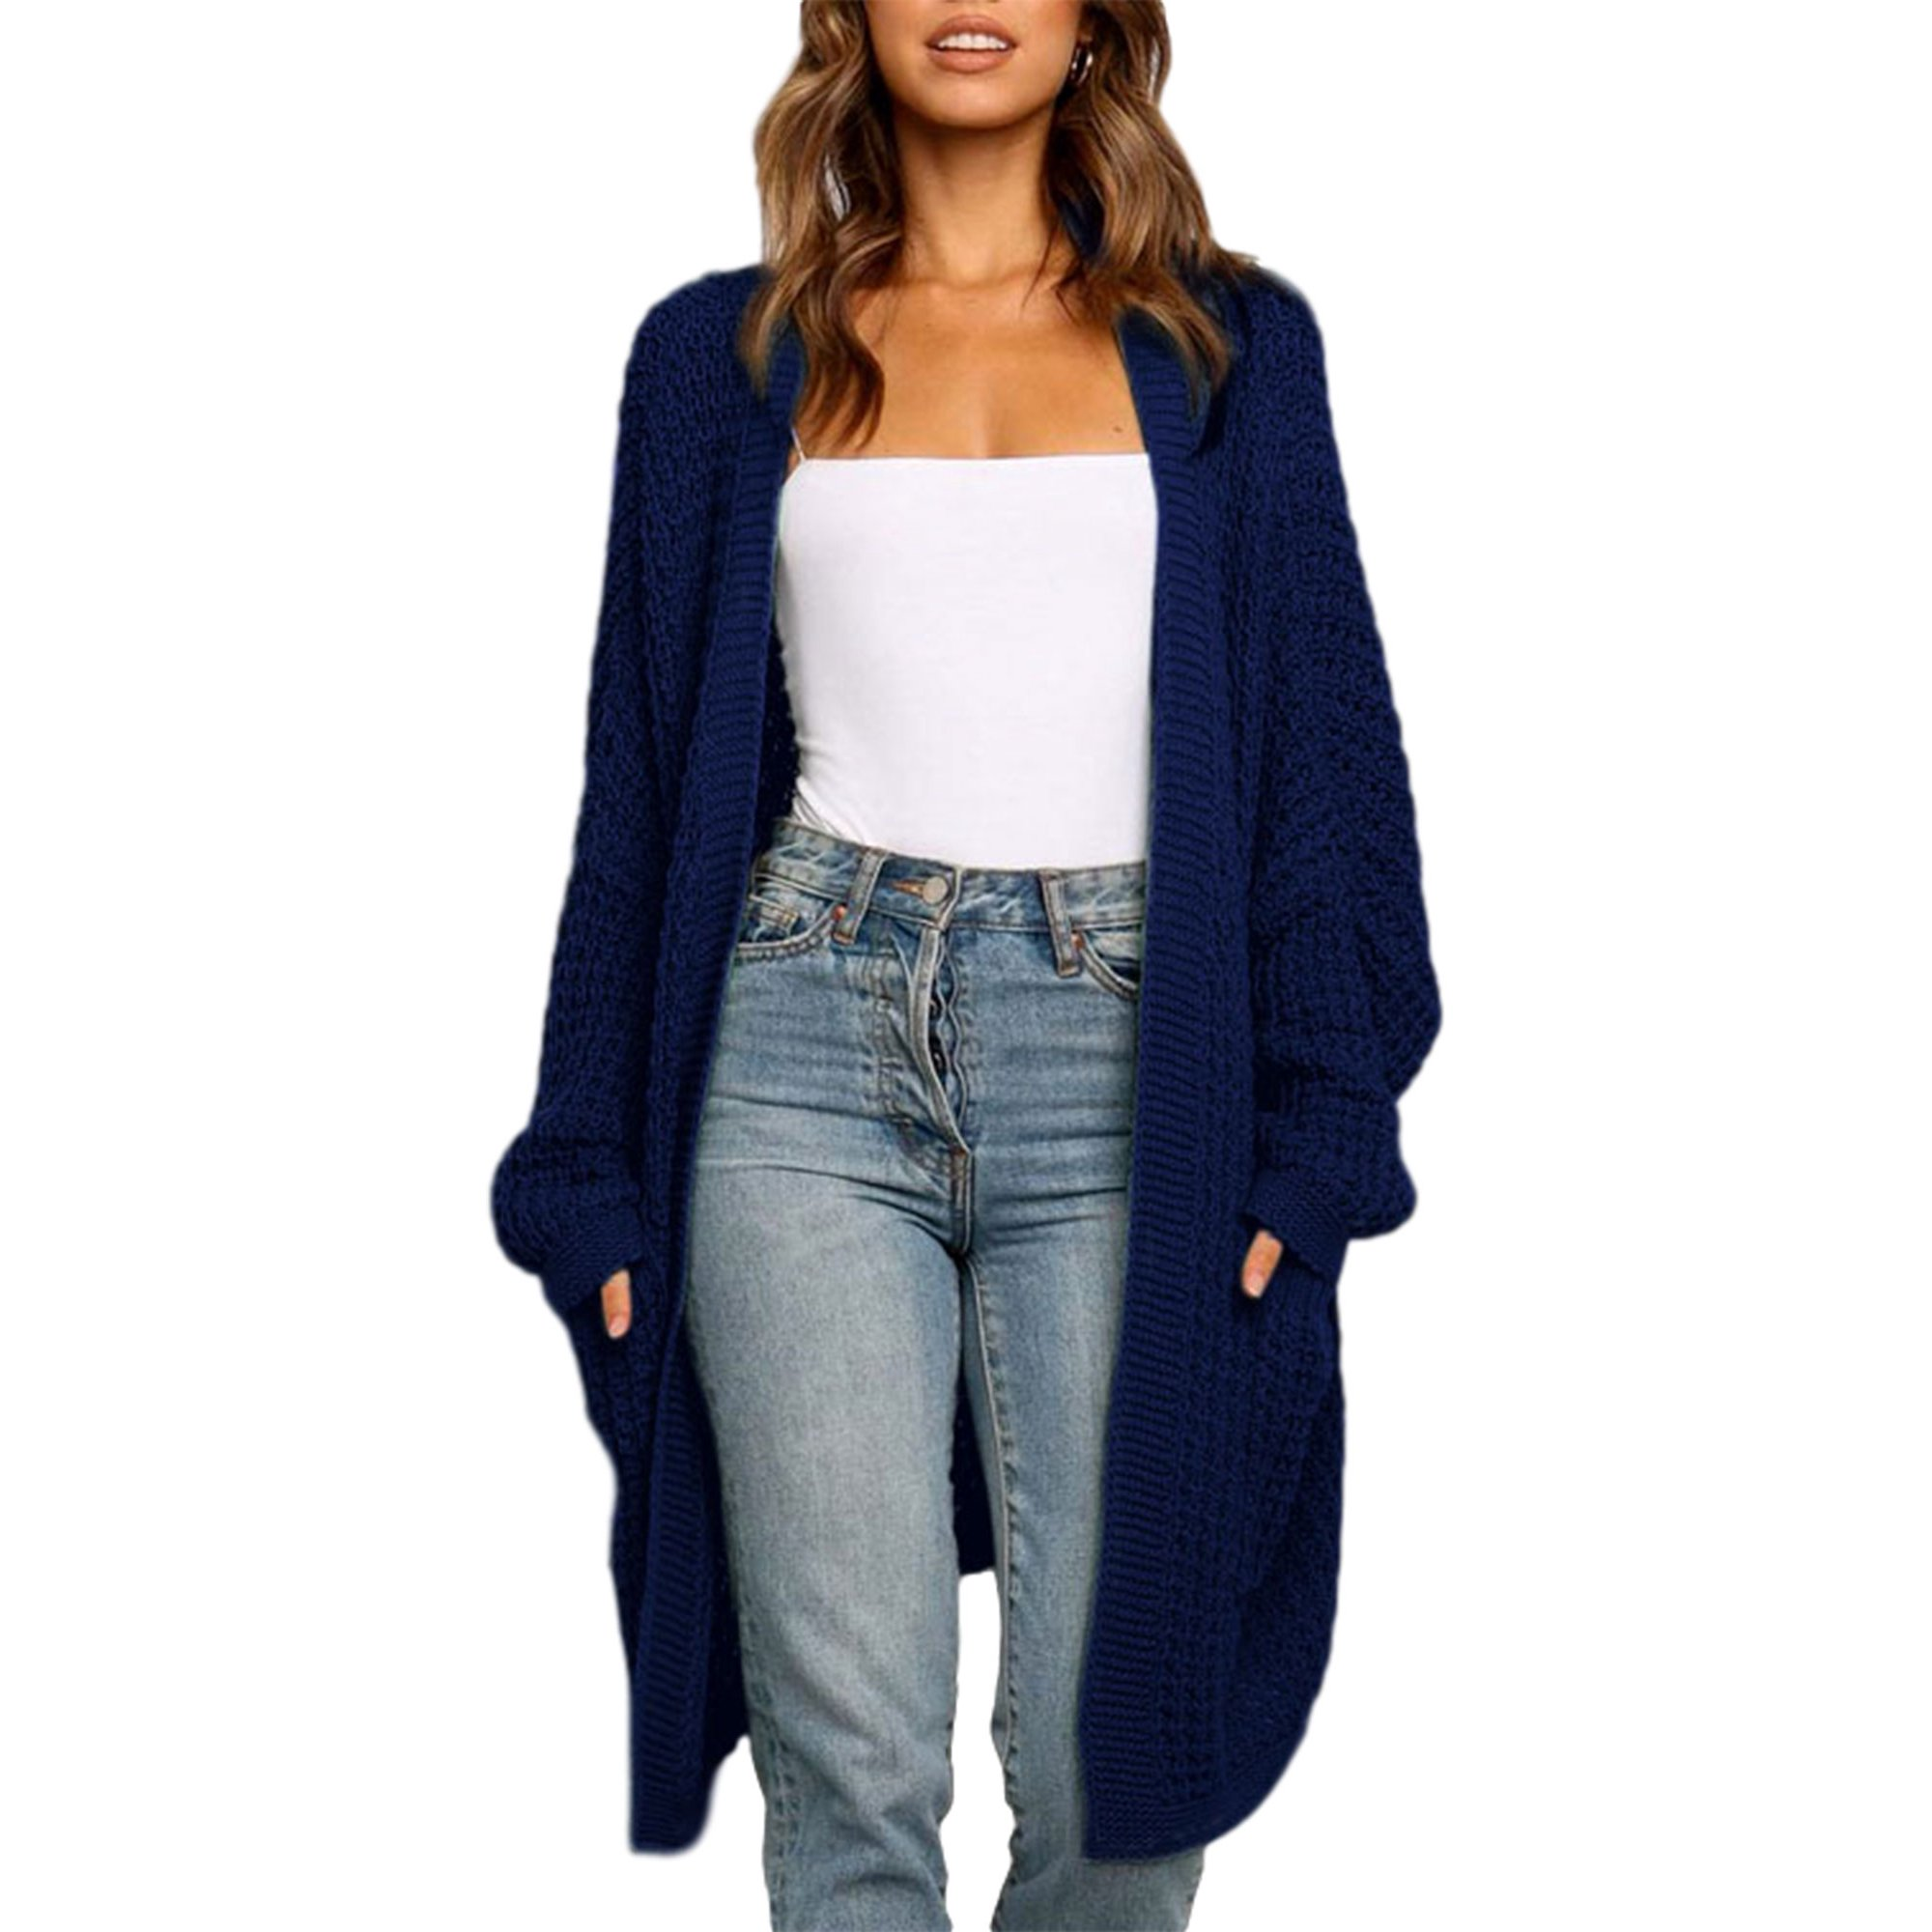 Selfieee Selfieee Women's Loose Open Front Long Sleeve Knit Cardigans Sweater Blouses with Packets 20258 Navy Blue Small